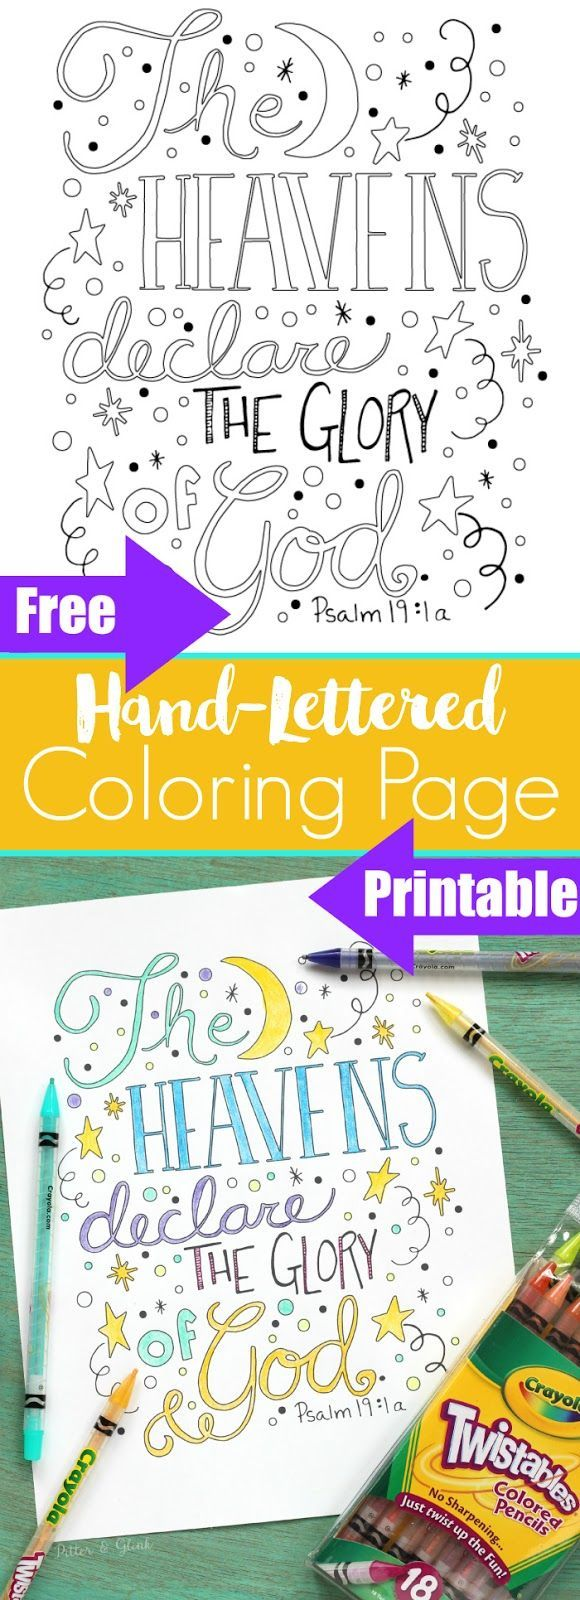 Free Hand Lettered Bible Verse Coloring Sheet Printable Bible Verse Coloring Bible Coloring Pages Bible Coloring